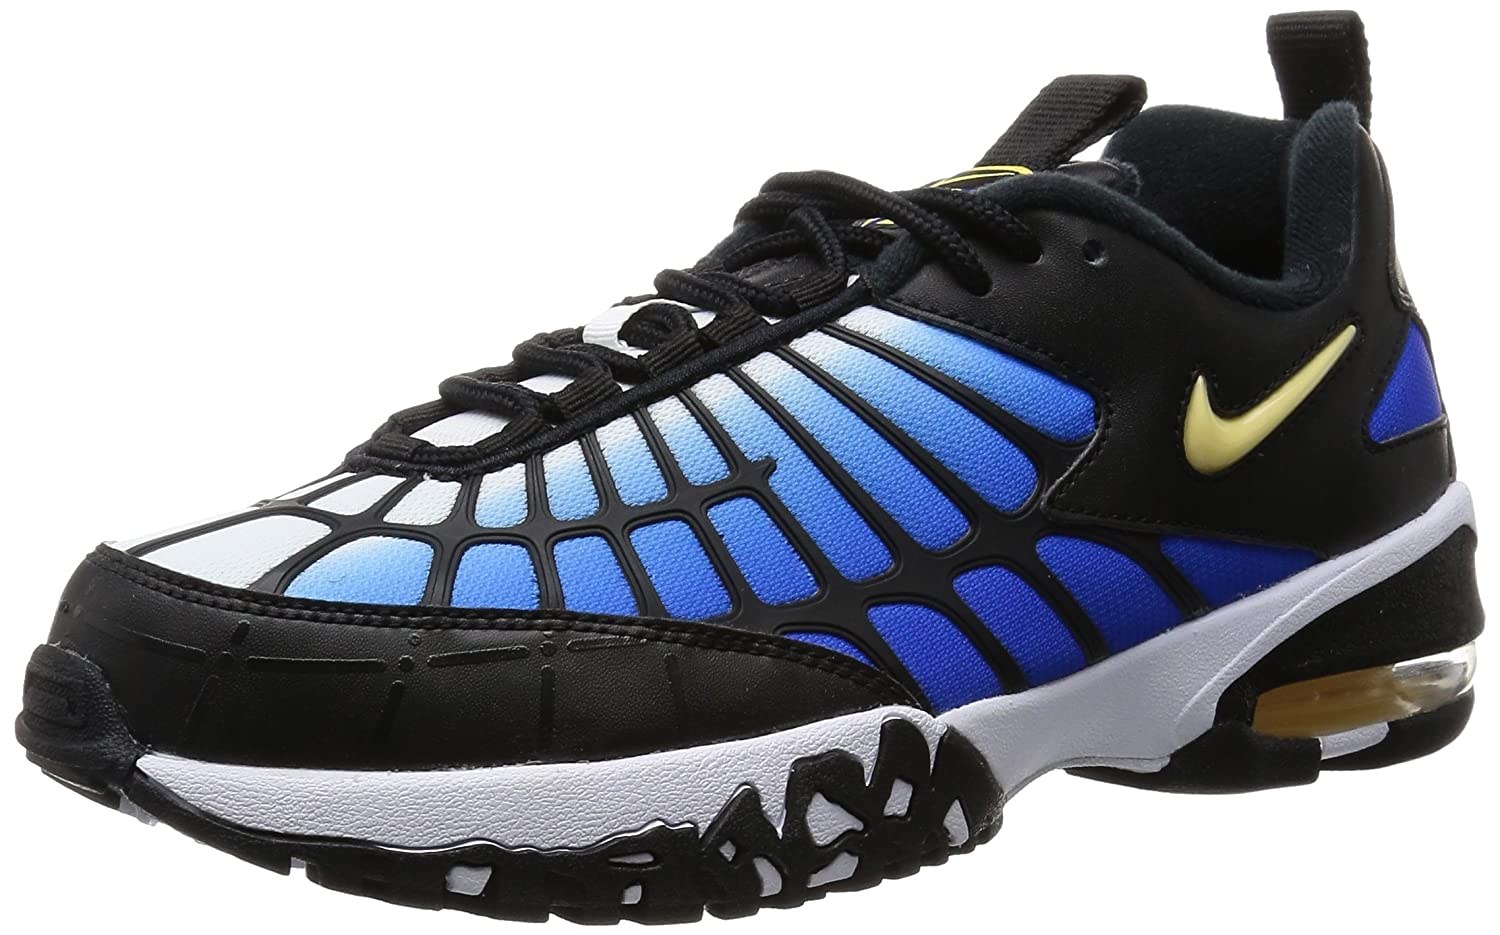 Nike Men s Air Max 120 Hyper Blue Black White 819857-400 (11)  Buy Online  at Low Prices in India - Amazon.in f190eb152